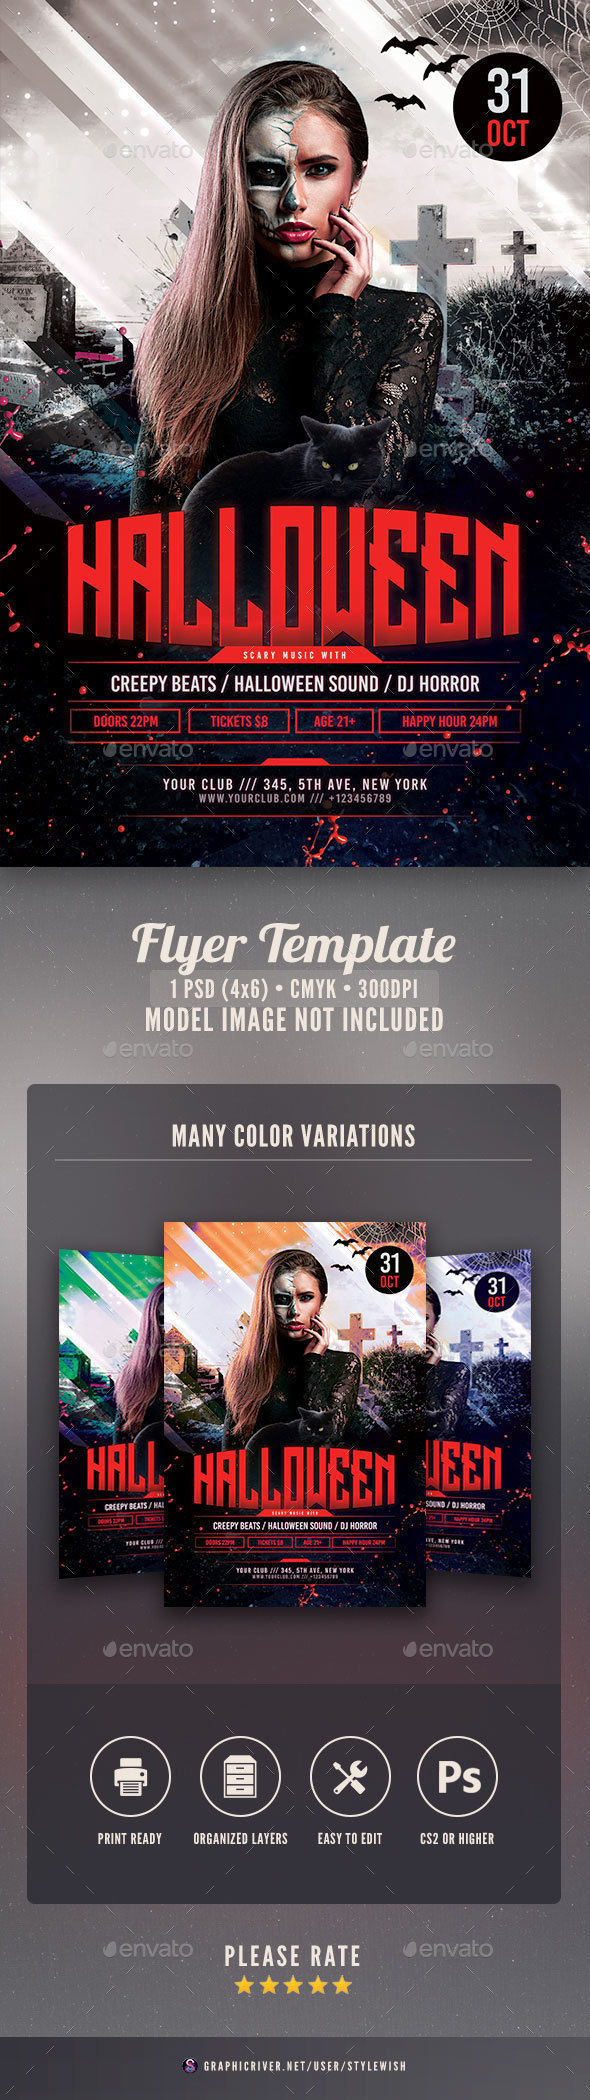 Halloween Flyer Template by StyleWish (Halloween party flyer)